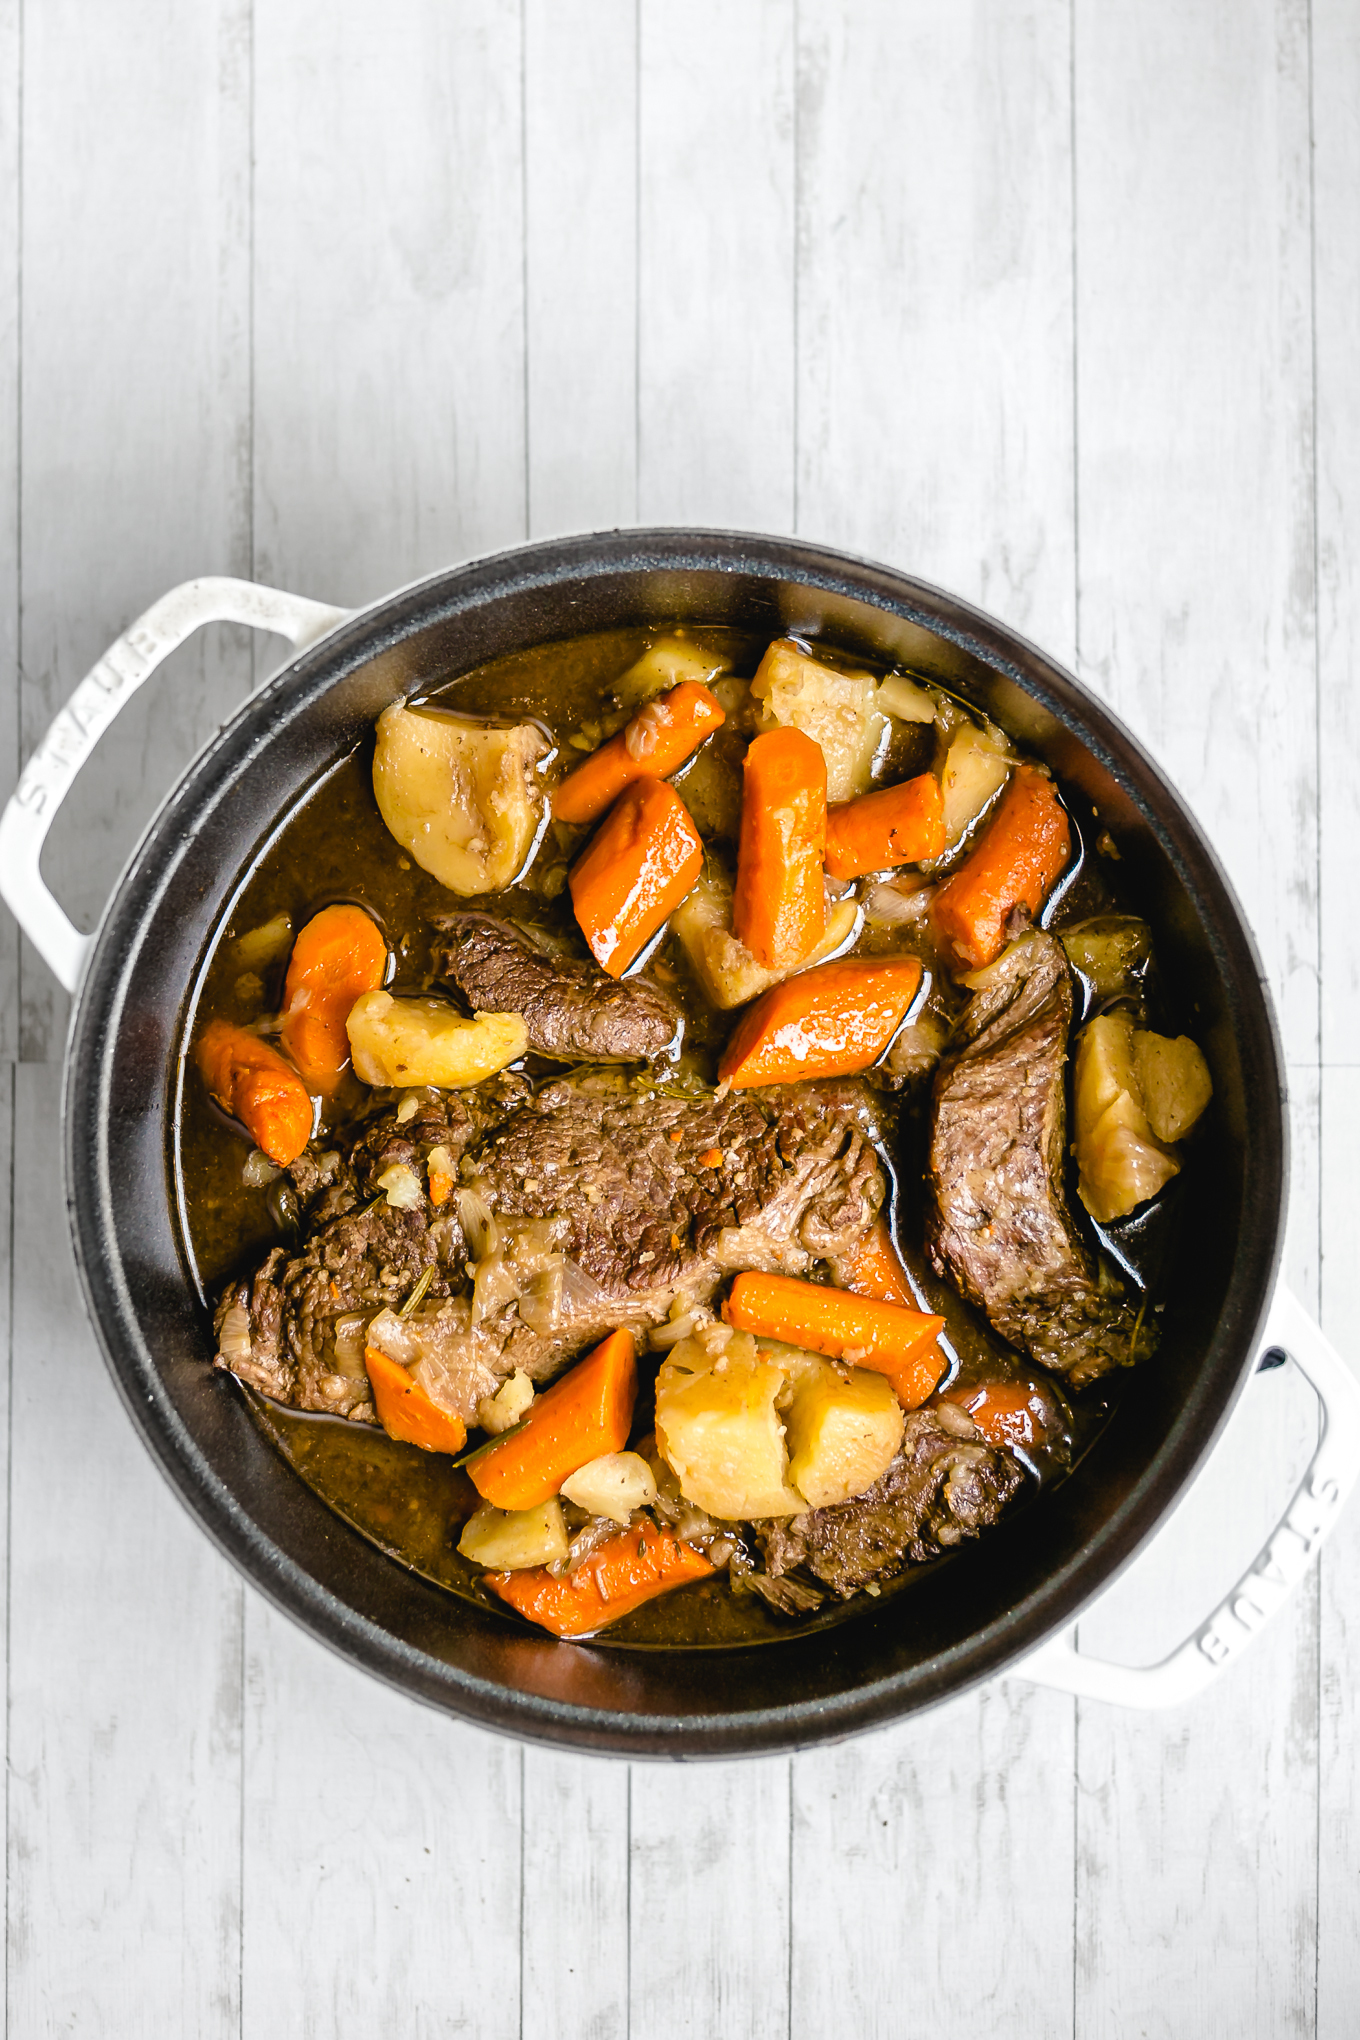 shot of finished pot roast recipe